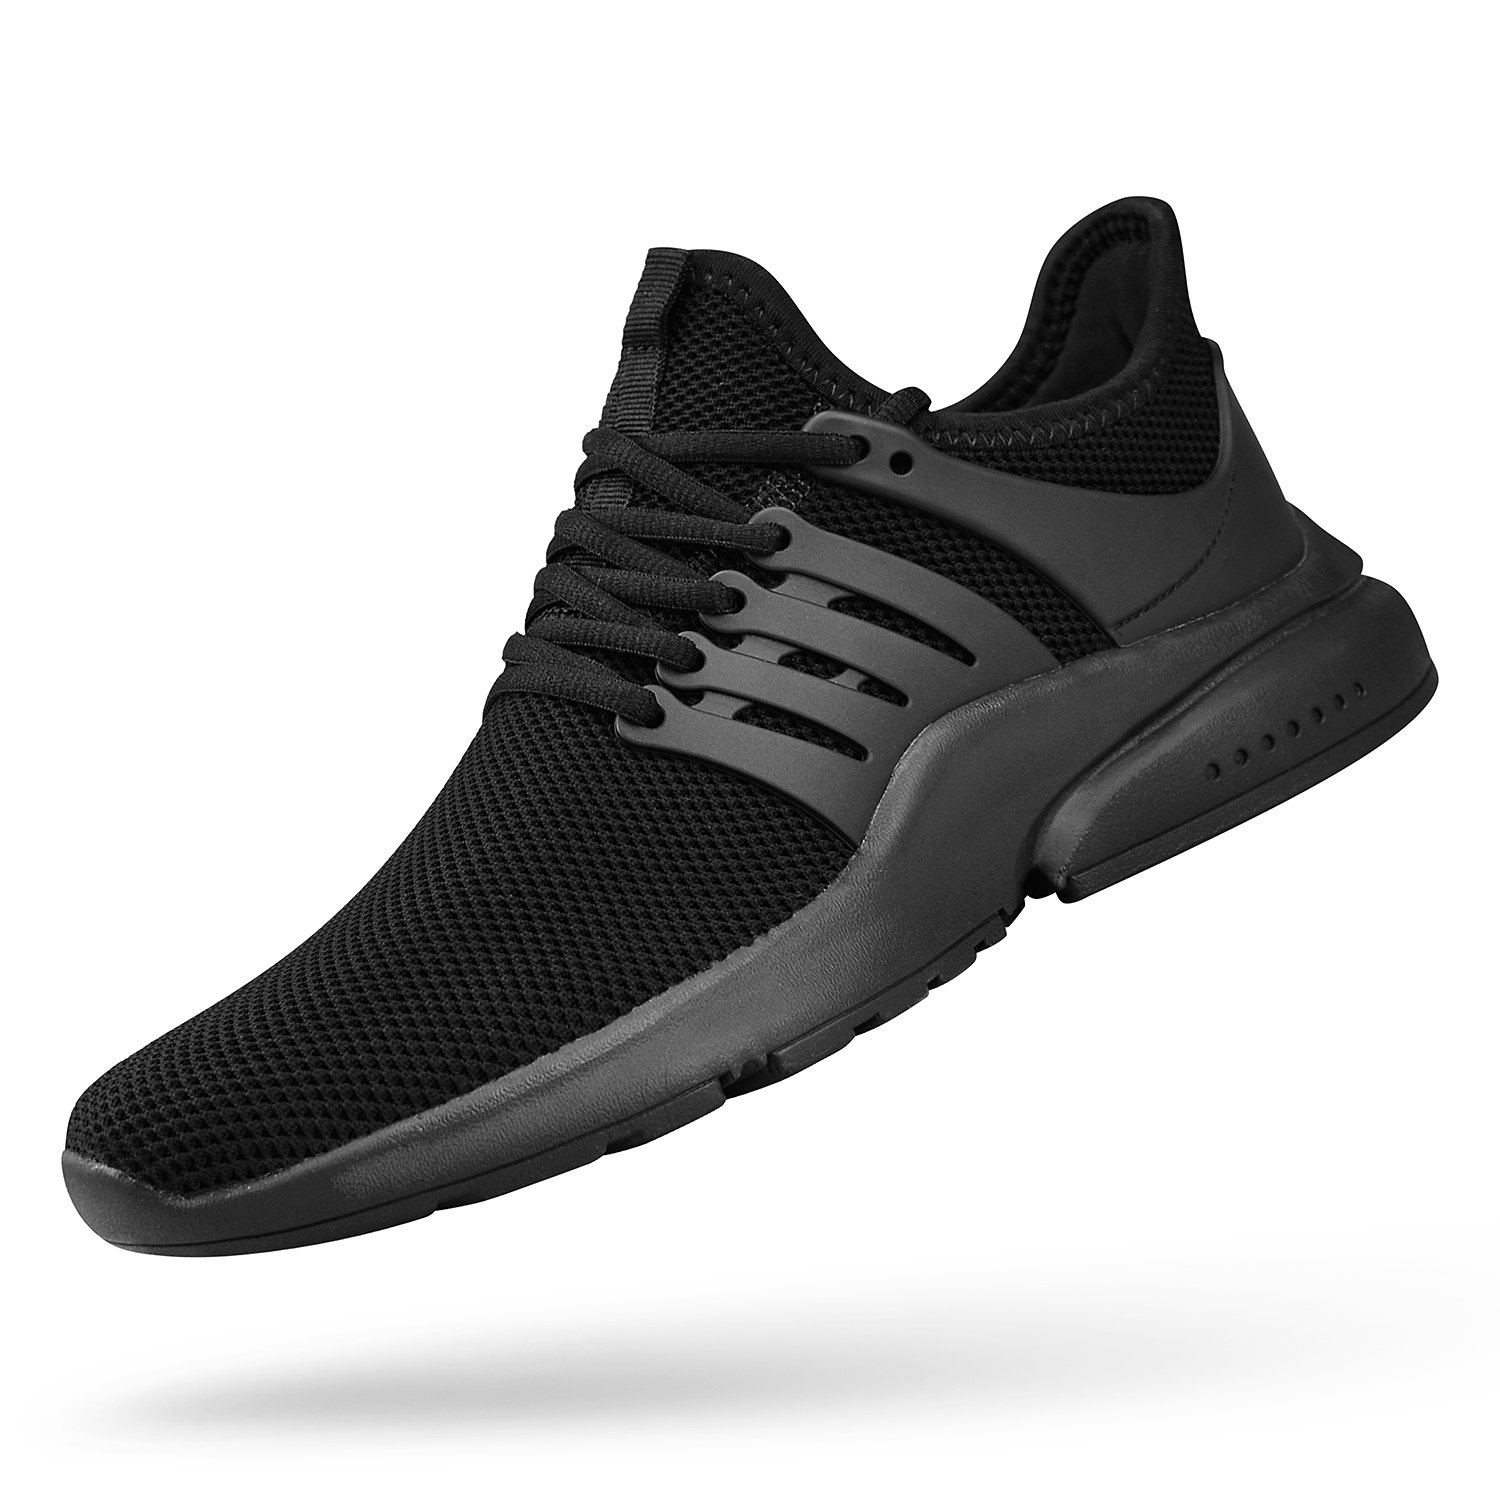 QANSI Mens Sneakers Mesh Breathable Athletic Running Workout Shoes Lightweight Tennis Gym Shoes